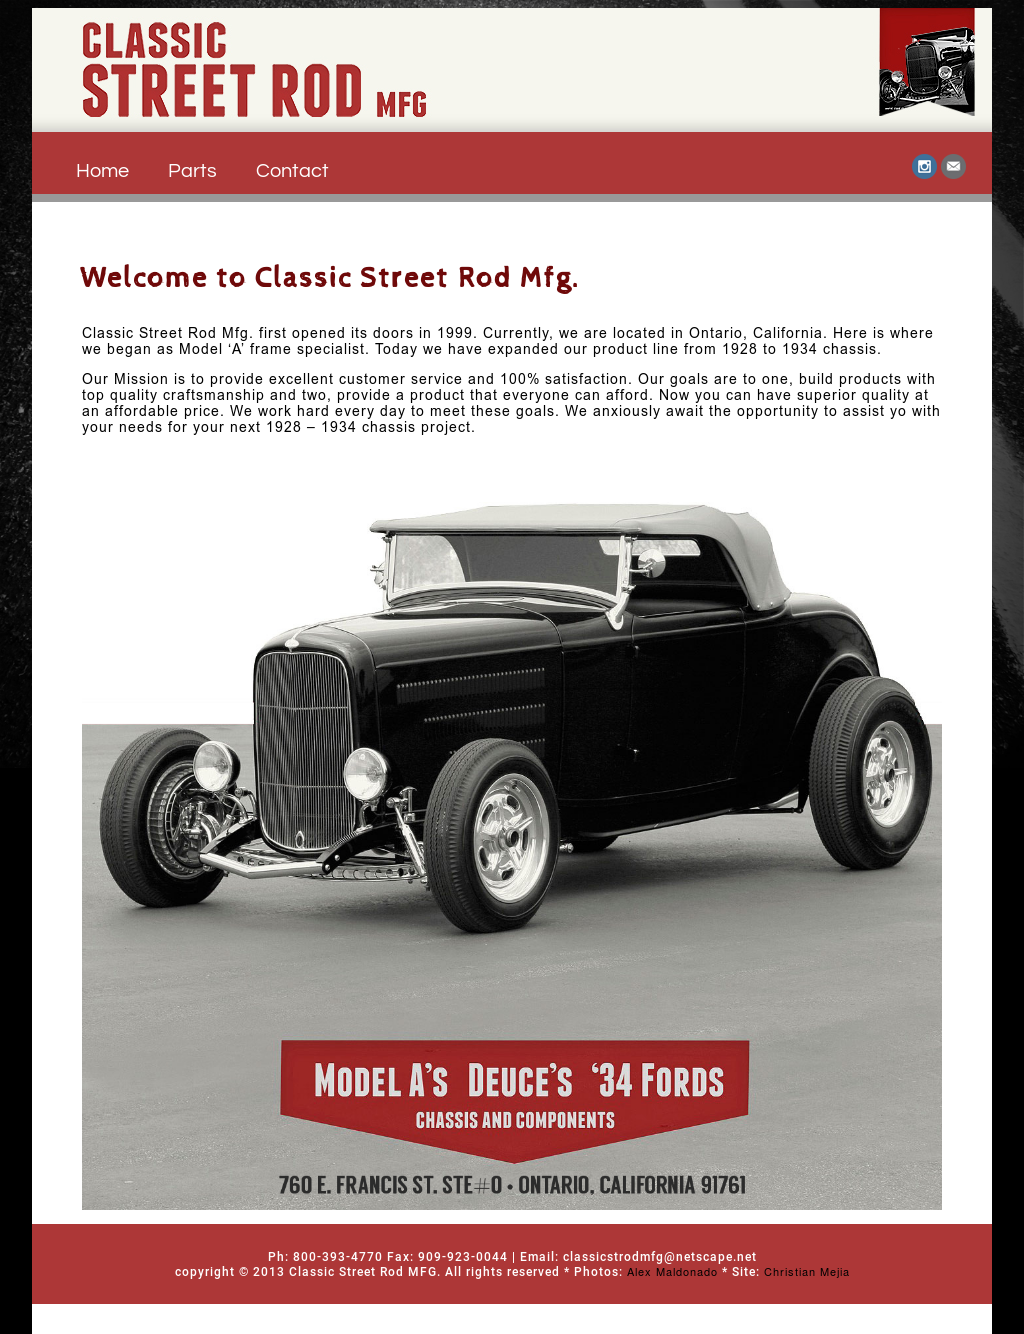 Fancy Affordable Street Rods Crest - Classic Cars Ideas - boiq.info